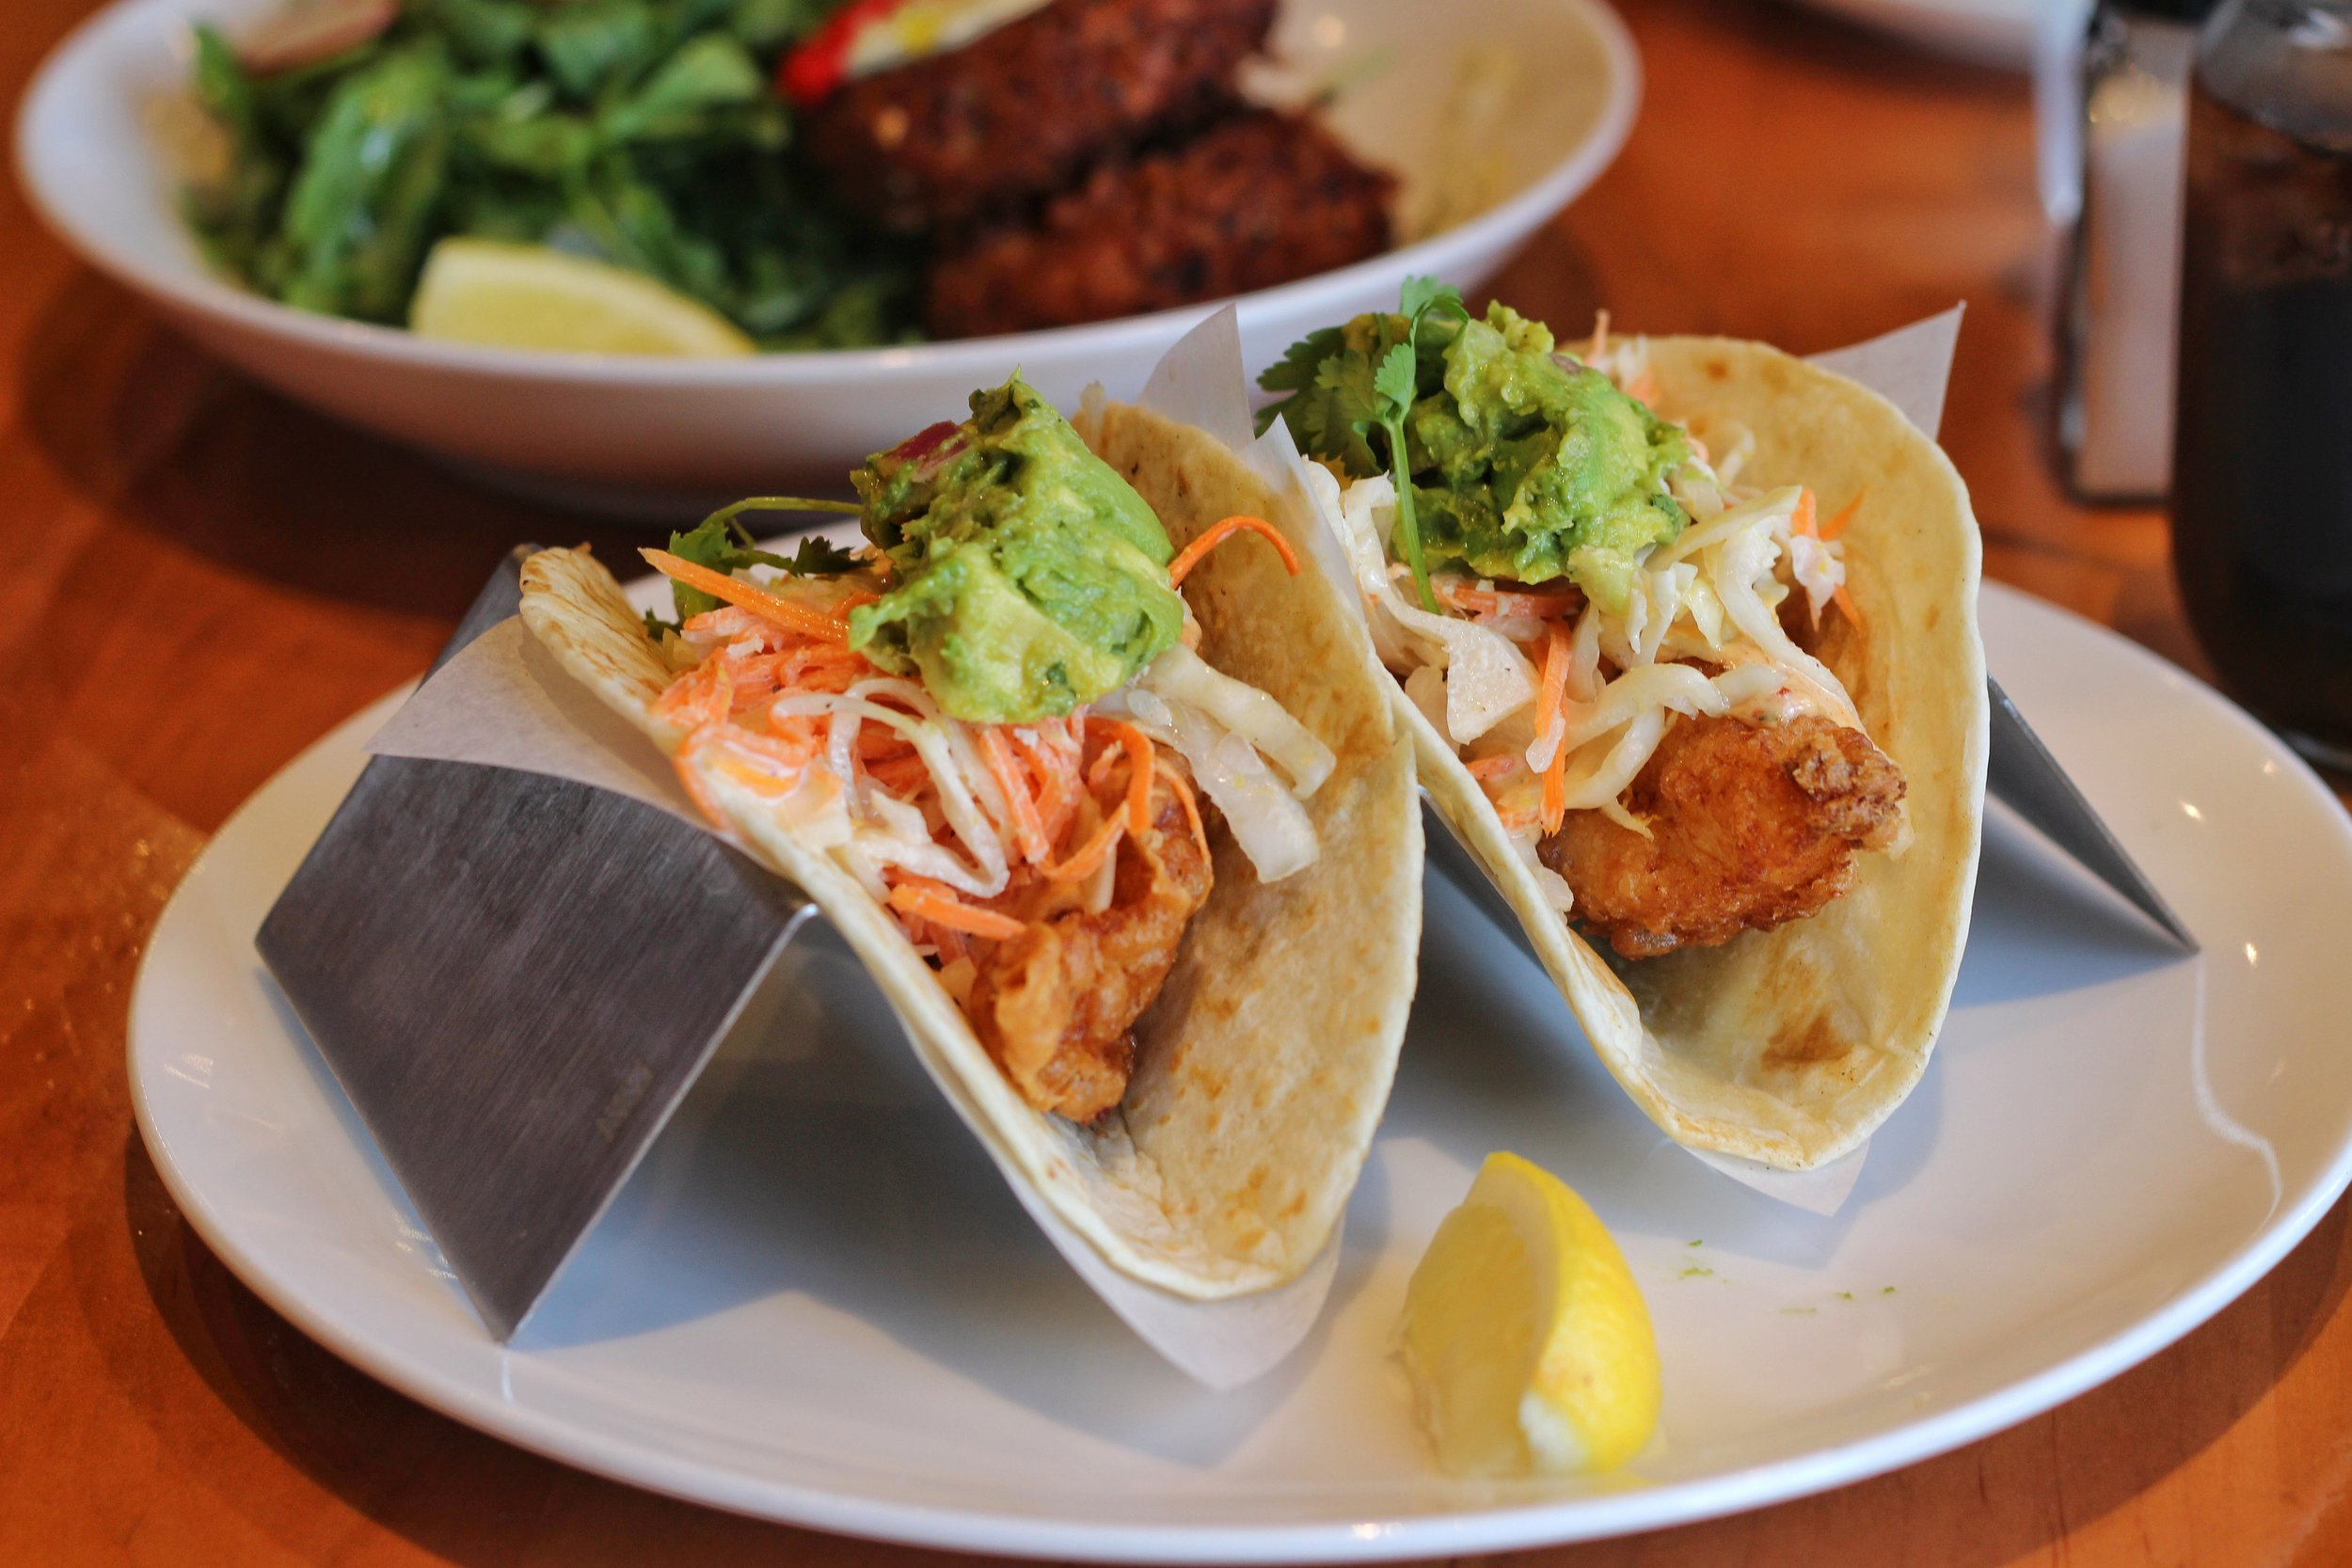 Baja Fish Tacos  – beer battered white fish, 2 homemade flour tortillas, citrus slaw, chipotle aioli, guacamole